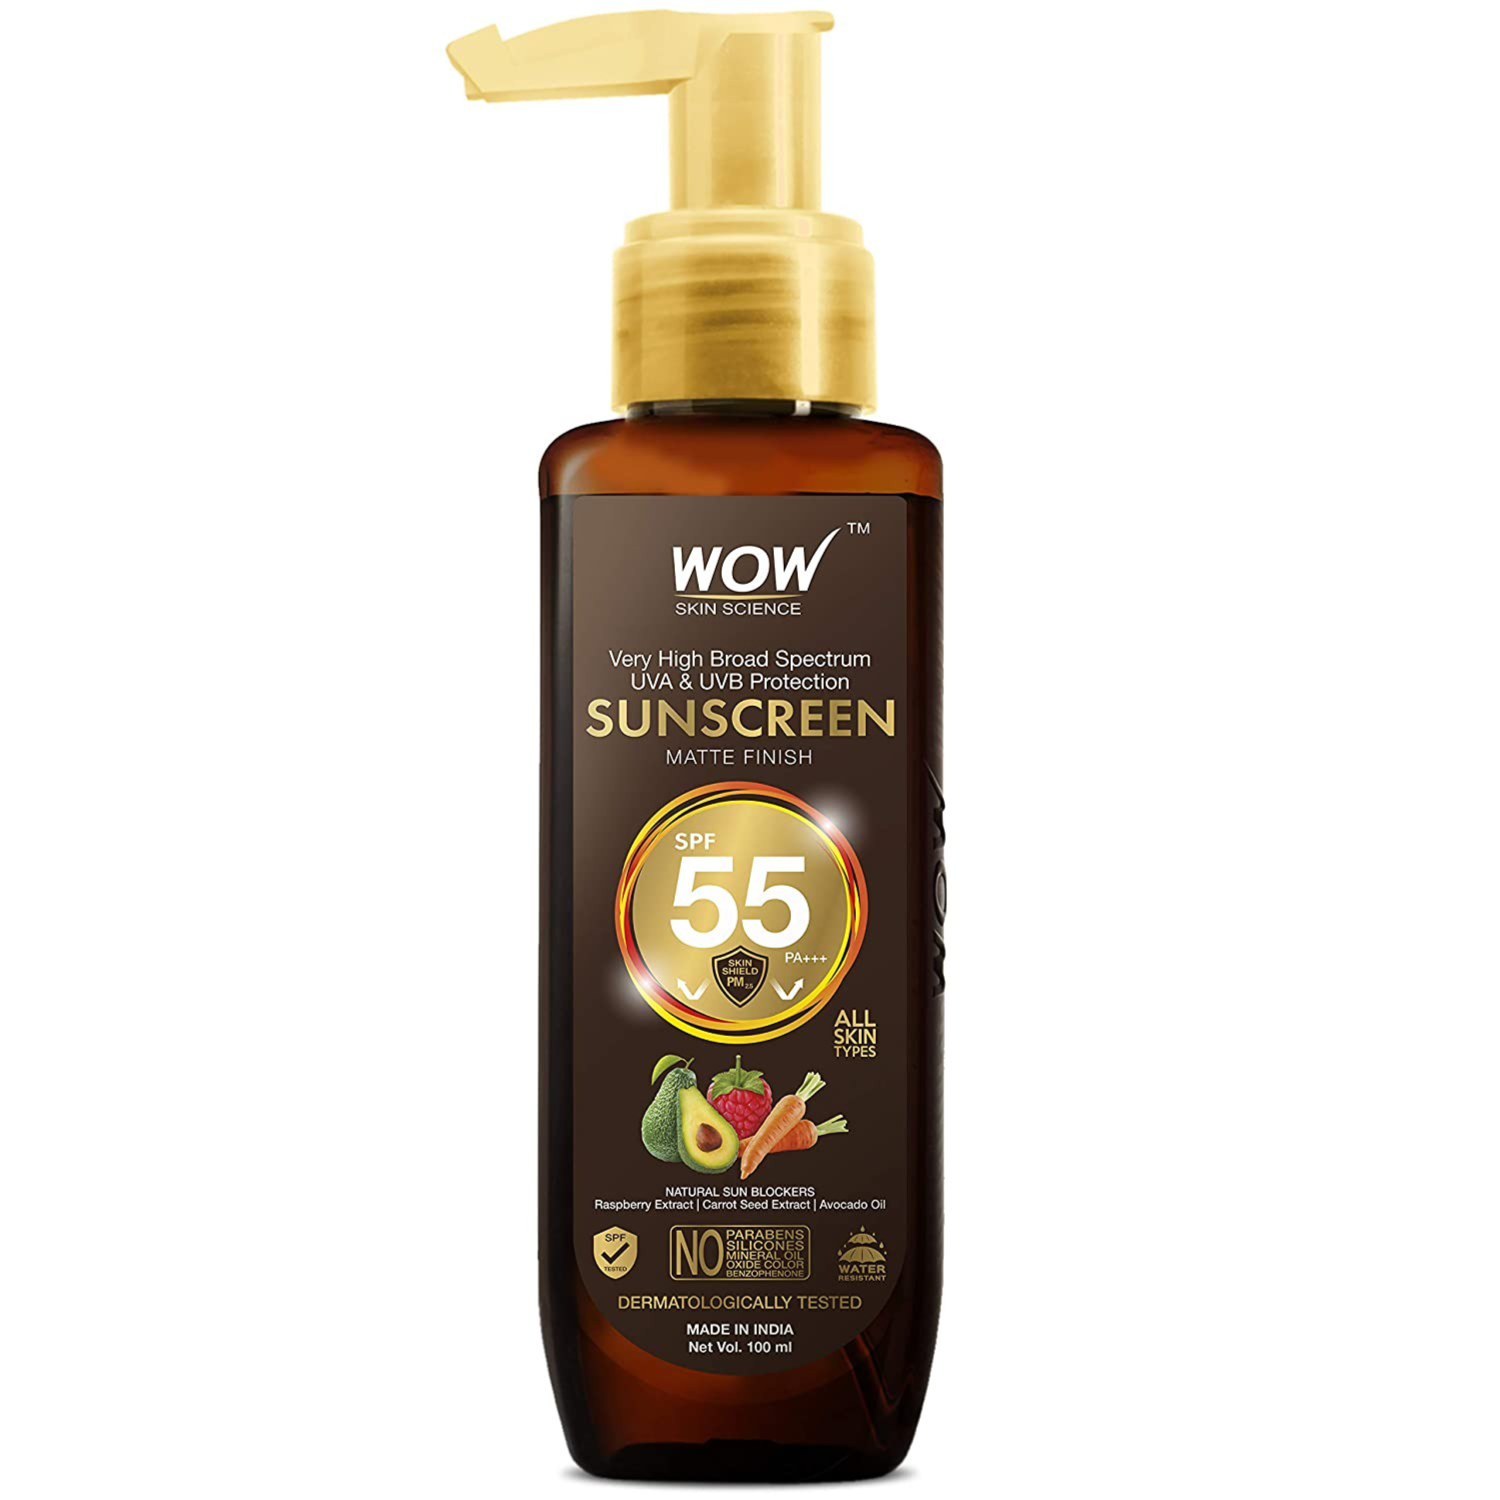 WOW Skin Science Sunscreen Matte Finish - Spf 55 Pa+++ - Very High Broad Spectrum - Uva &Uvb Protection - Quick Absorb - No Parabens, Silicones, Mineral Oil, Oxide, Color & Benzophenone, 100mL : Amazon.in: Beauty